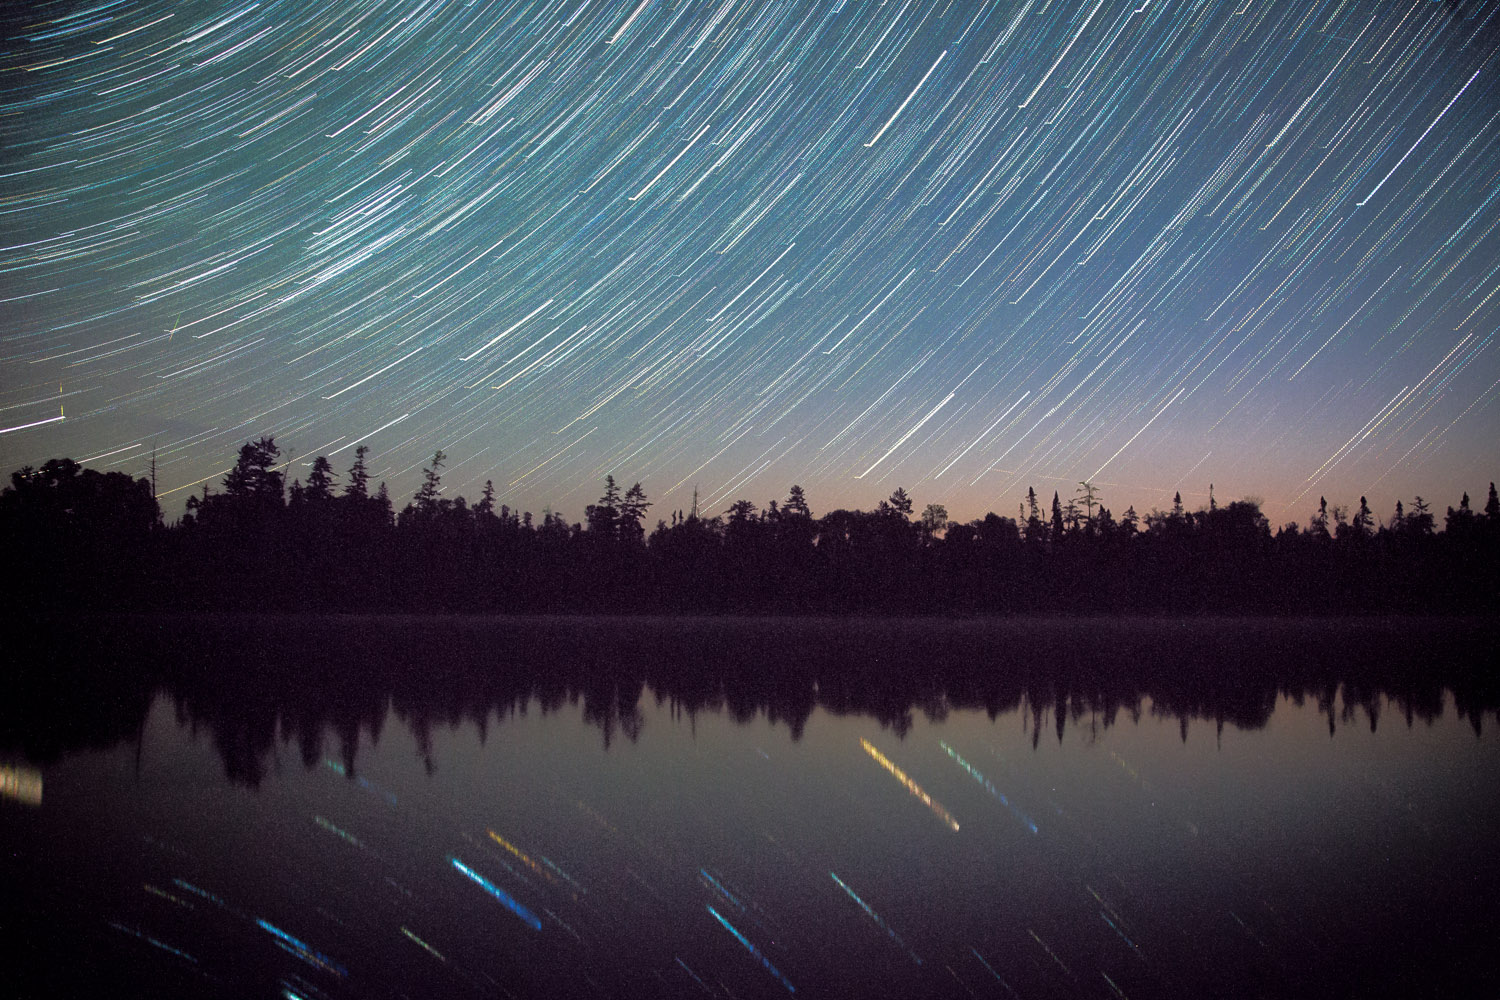 Star trails while the moon rose!